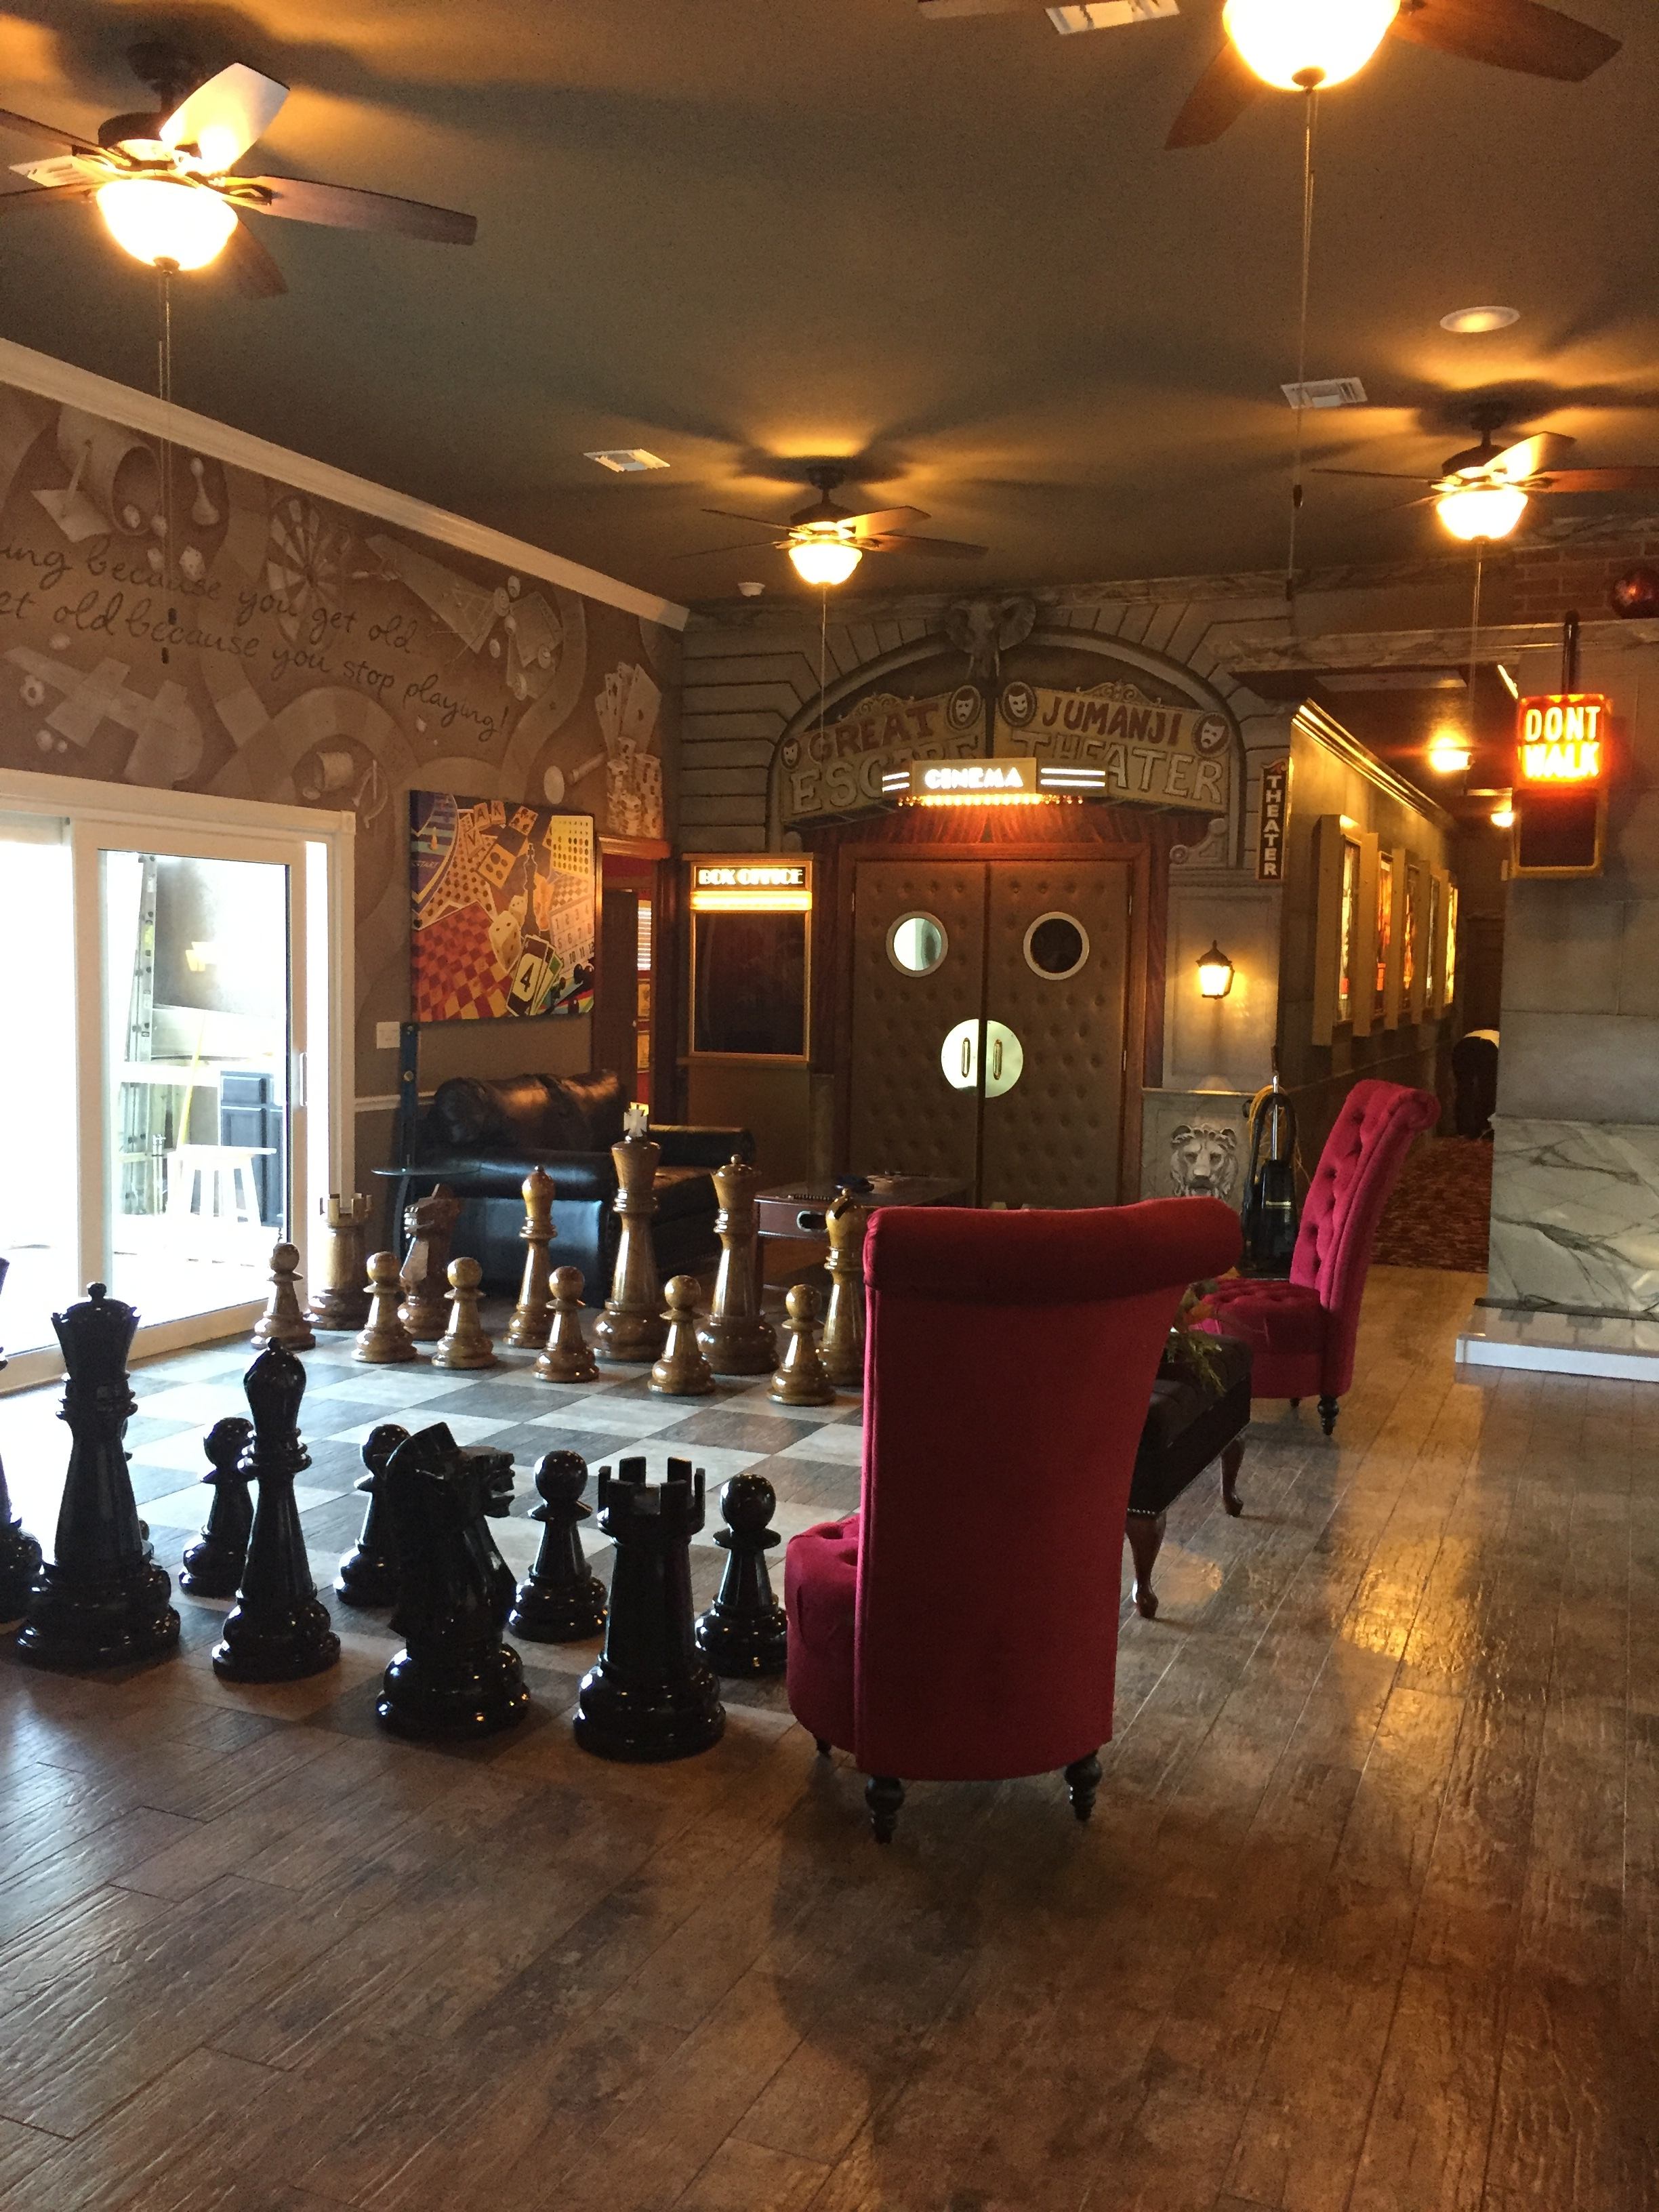 The Formal Living Room Of The Great Escape Lakeside   With Giant Chess Part 82